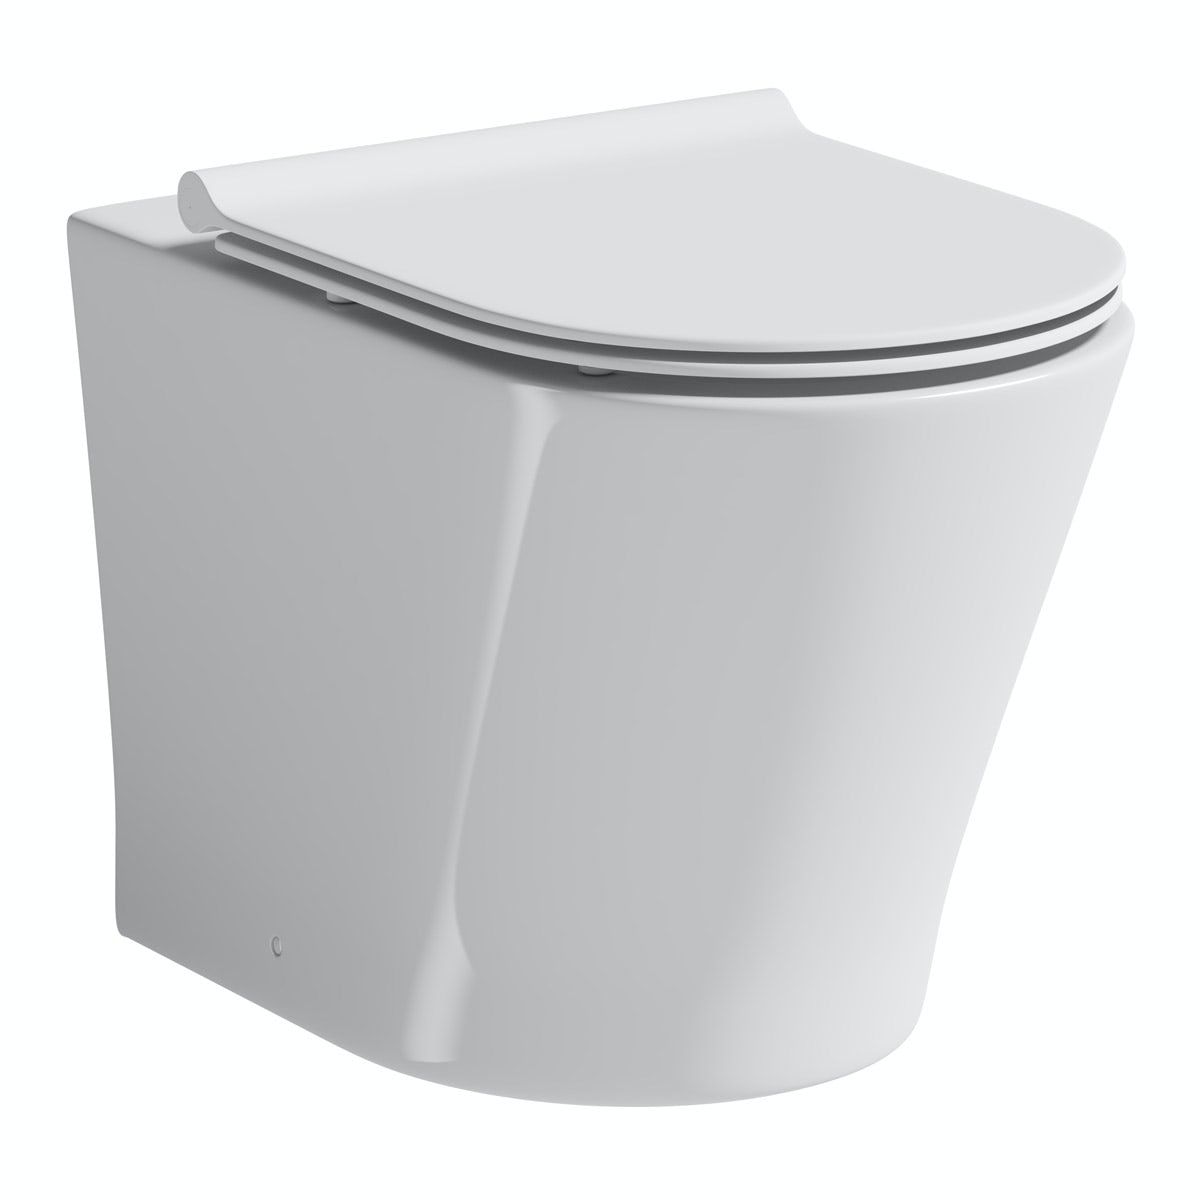 Mode Tate back to wall toilet inc slimline soft close toilet seat